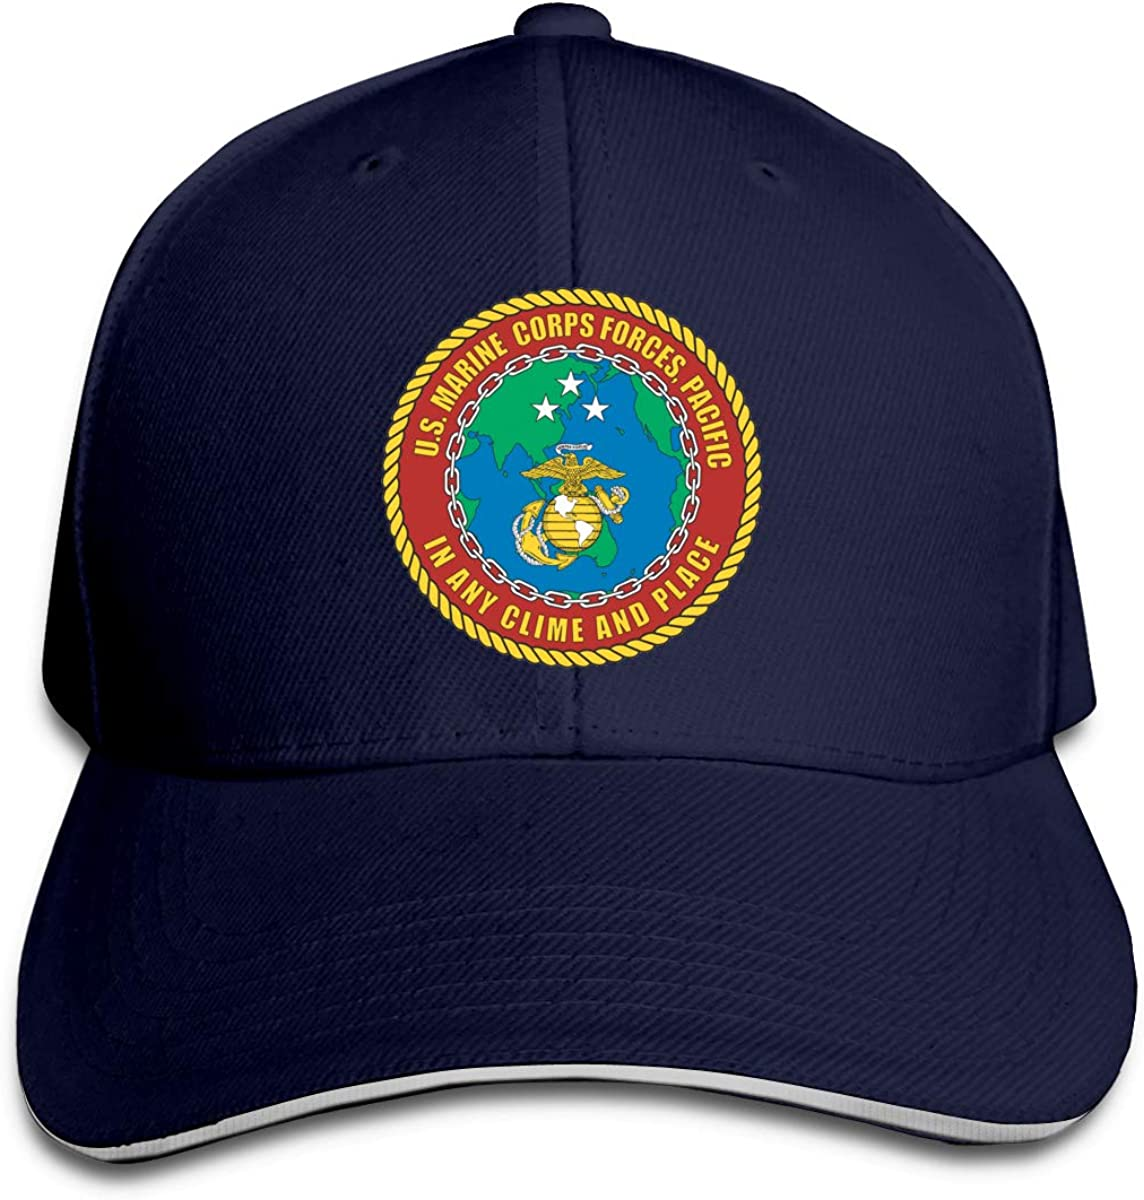 US Marine Corps Forces Unisex Adult Baseball Caps Adjustable Sandwich Caps Jeans Caps Adjustable Denim Trucker Cap